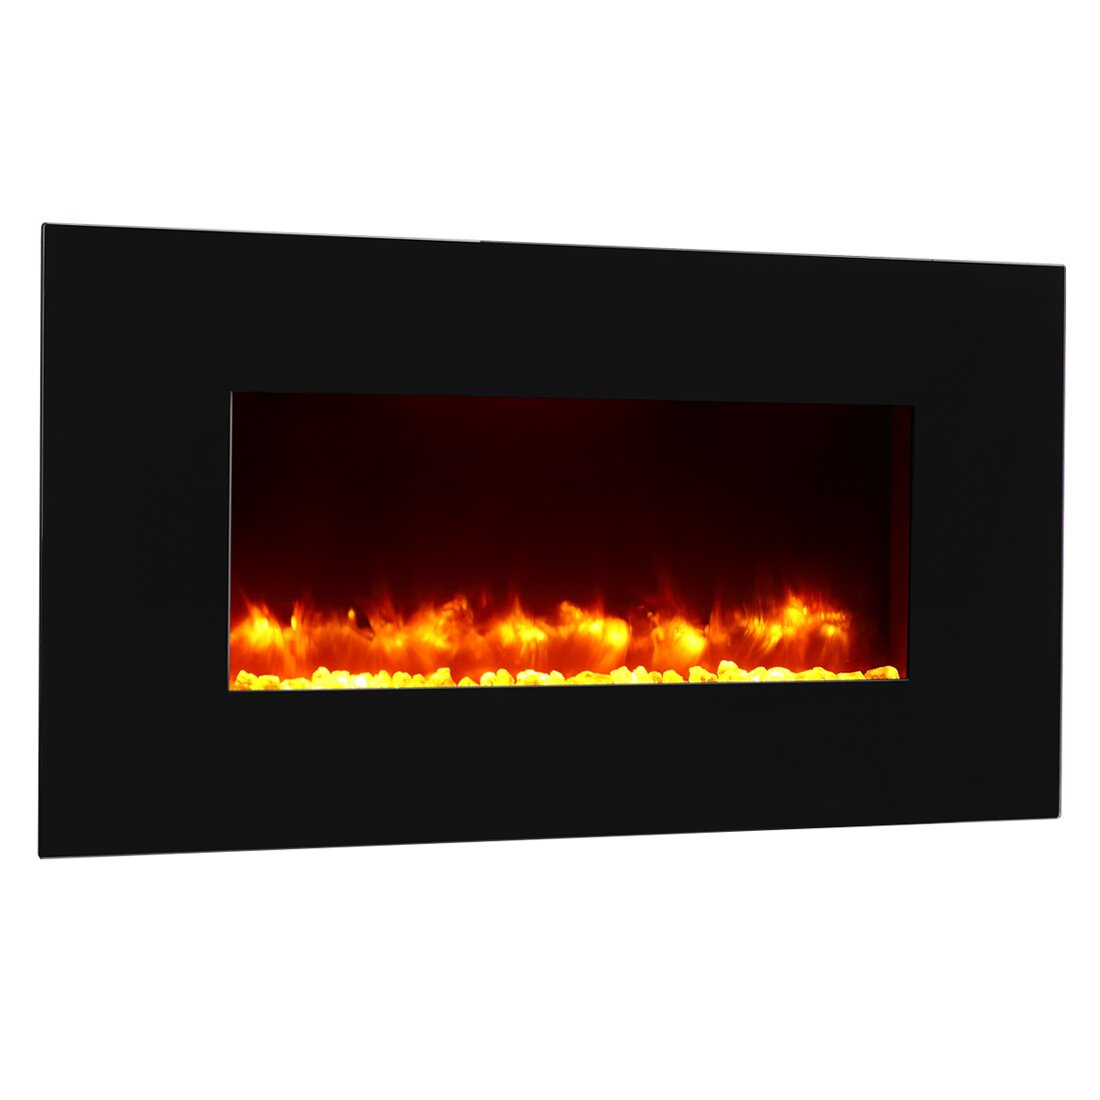 Puraflame Remote Control Wall Mount Electric Fireplace Reviews Wayfair